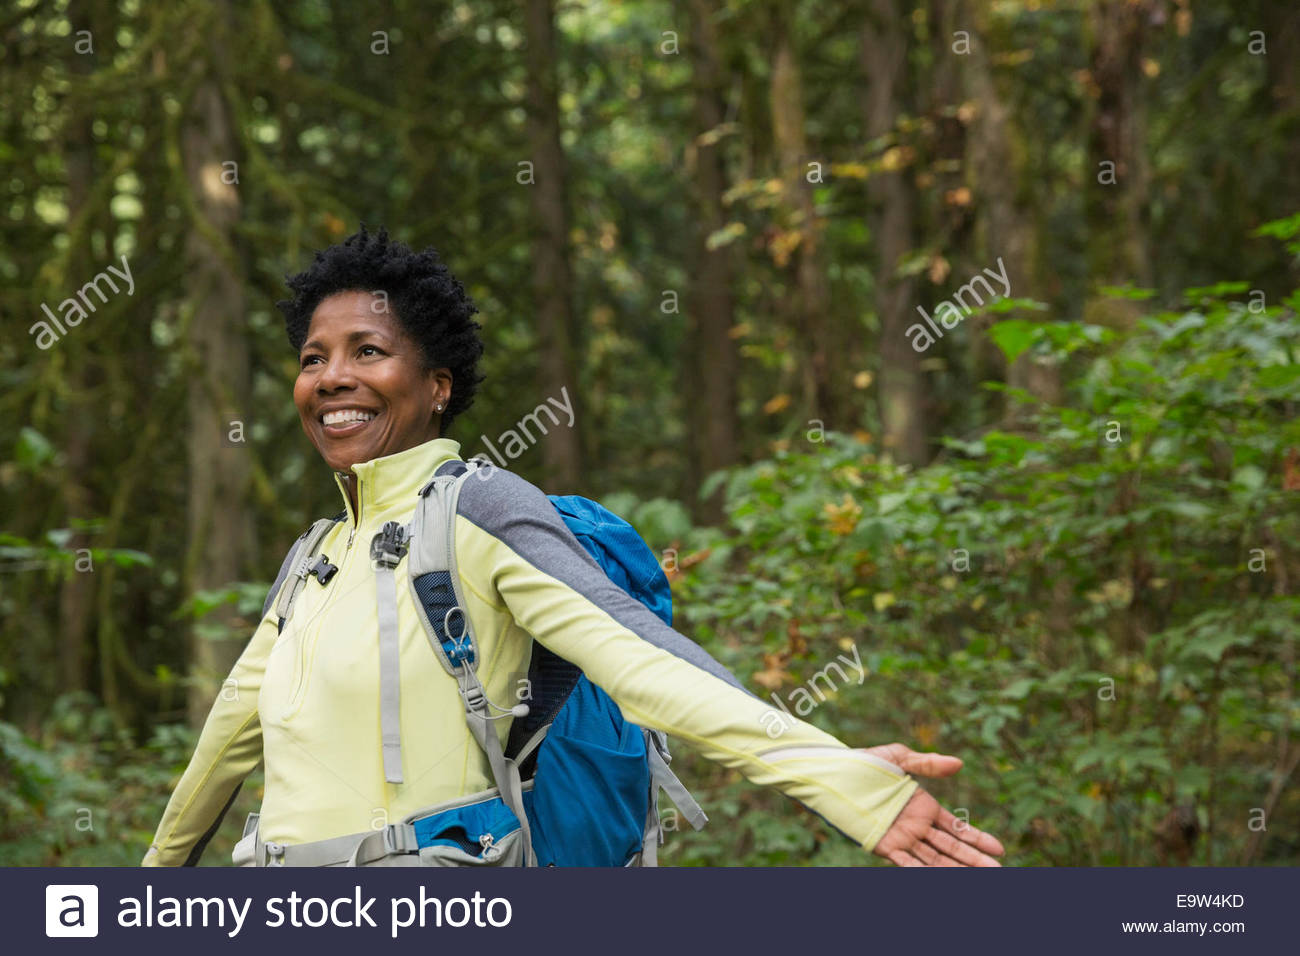 Smiling woman with arms outstretched in woods Photo Stock